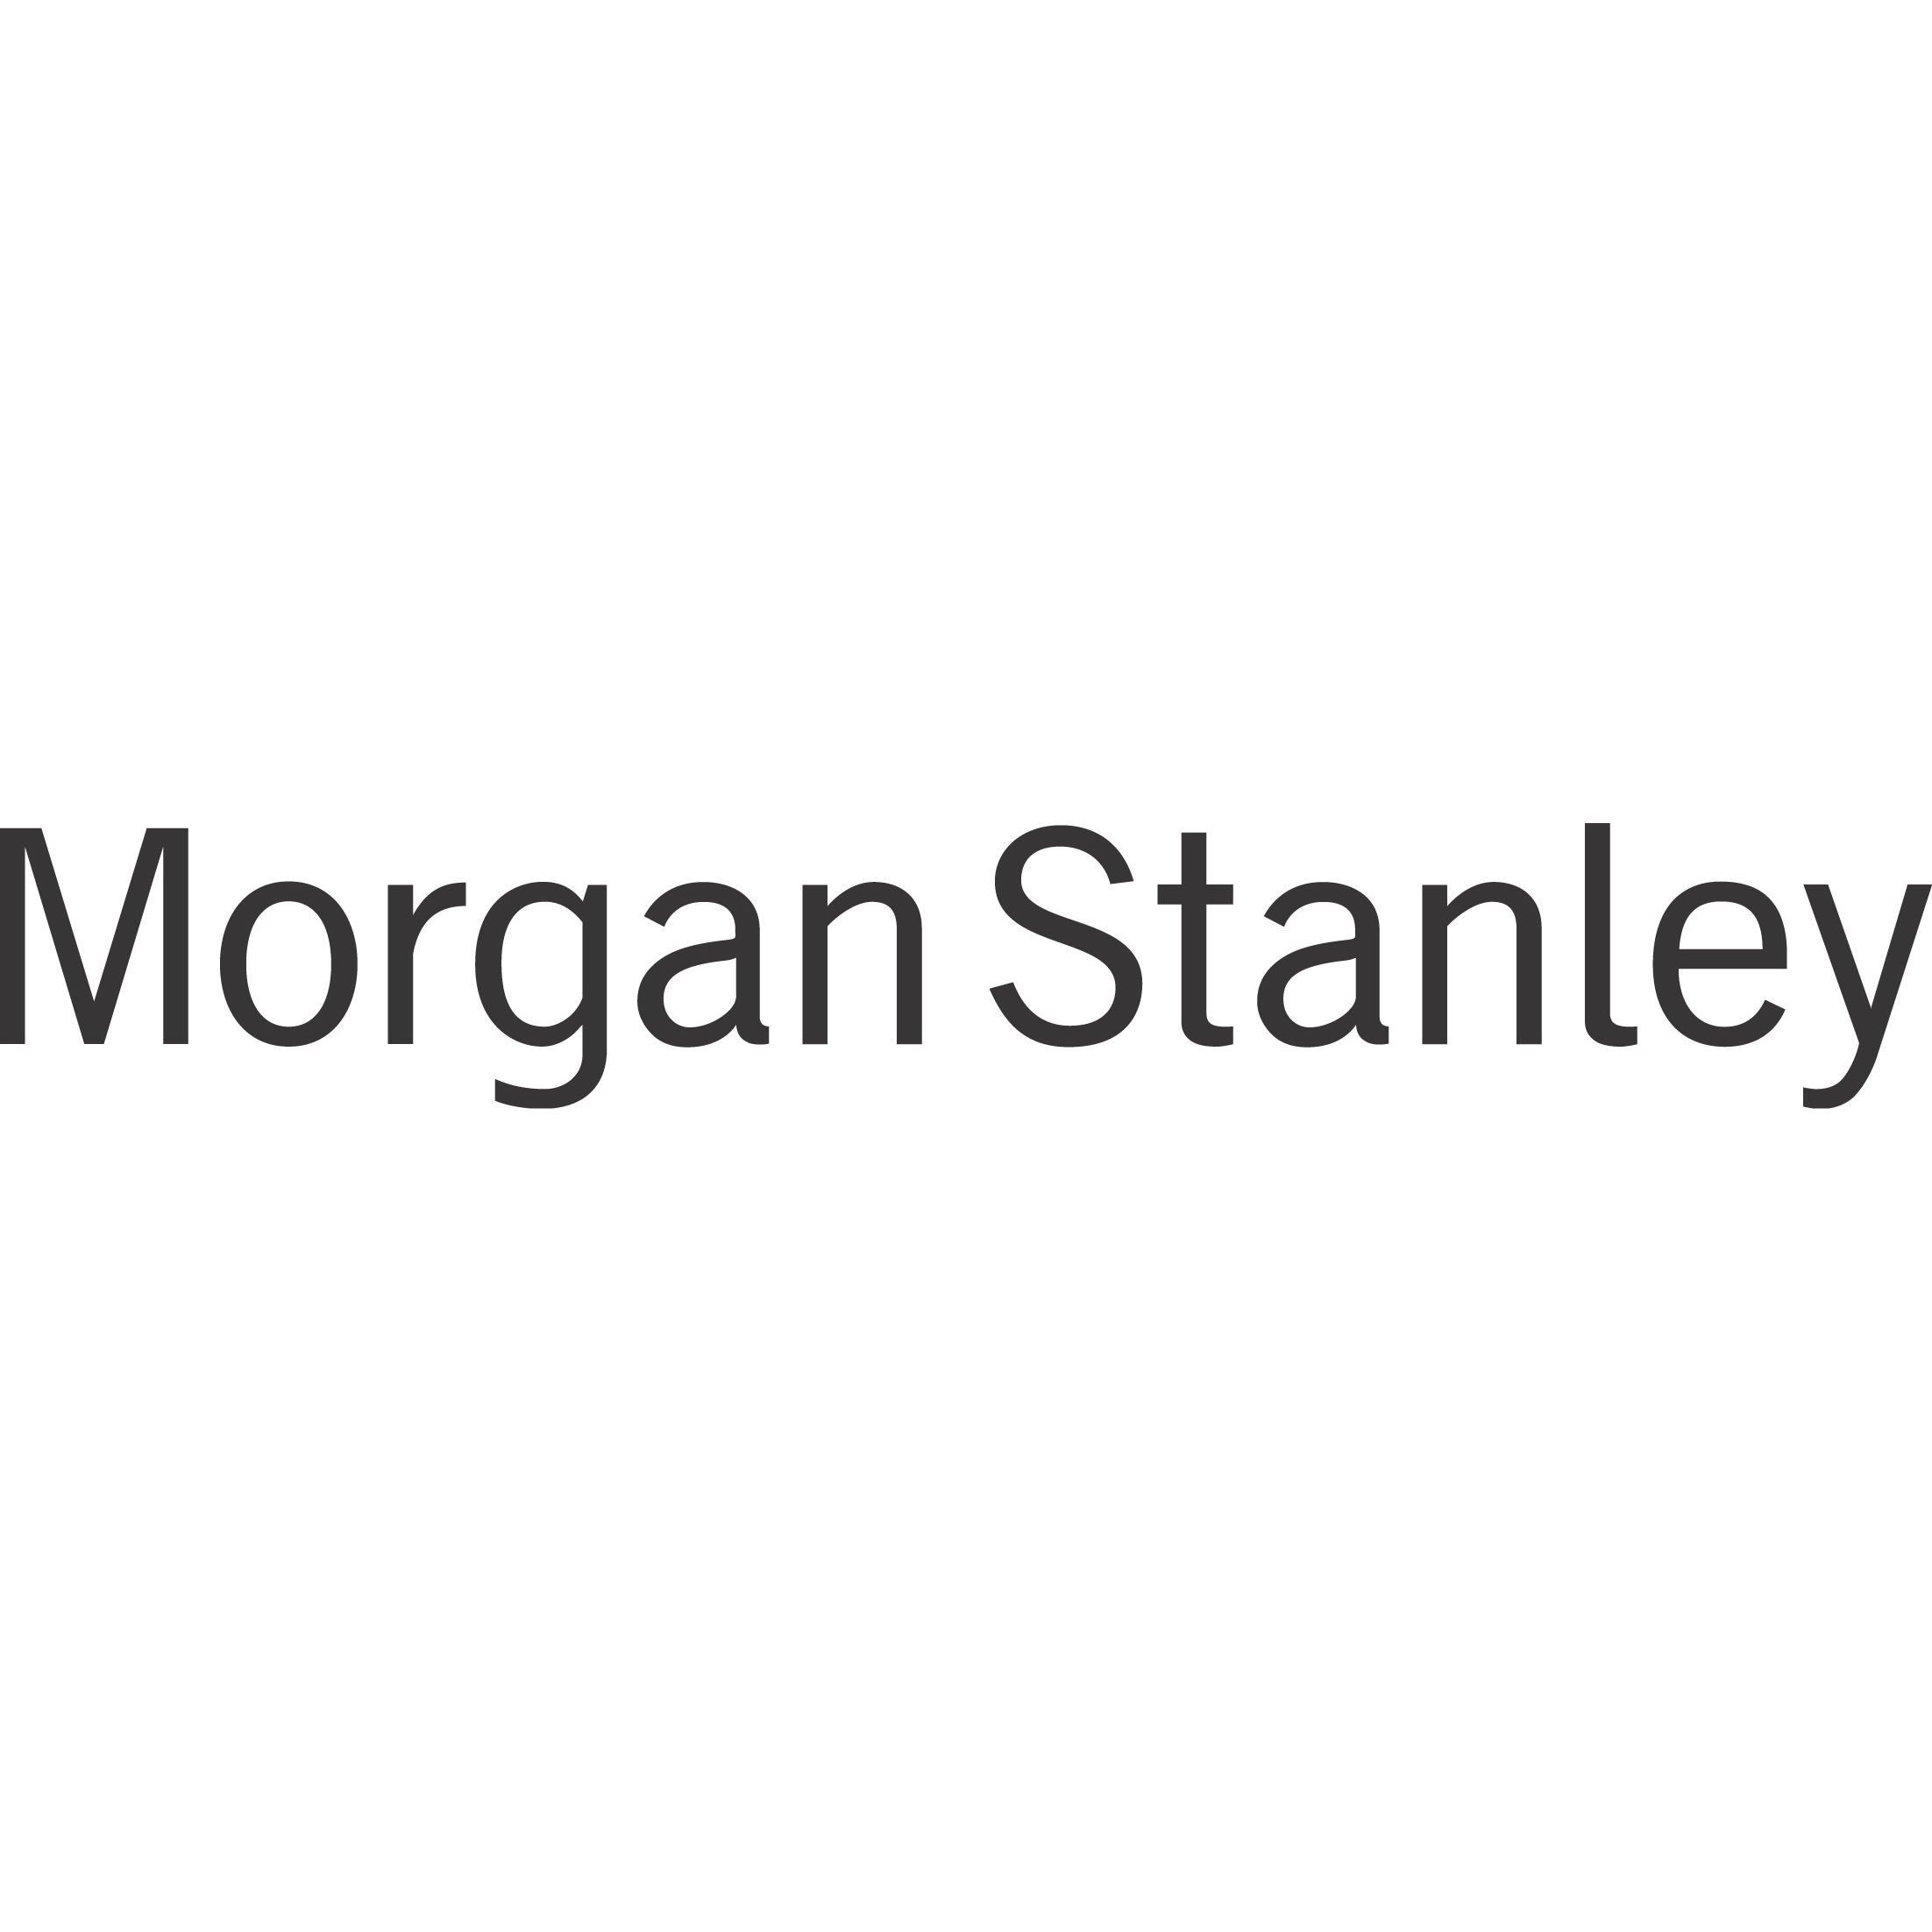 Neal Teicher - Morgan Stanley | Financial Advisor in Florham Park,New Jersey